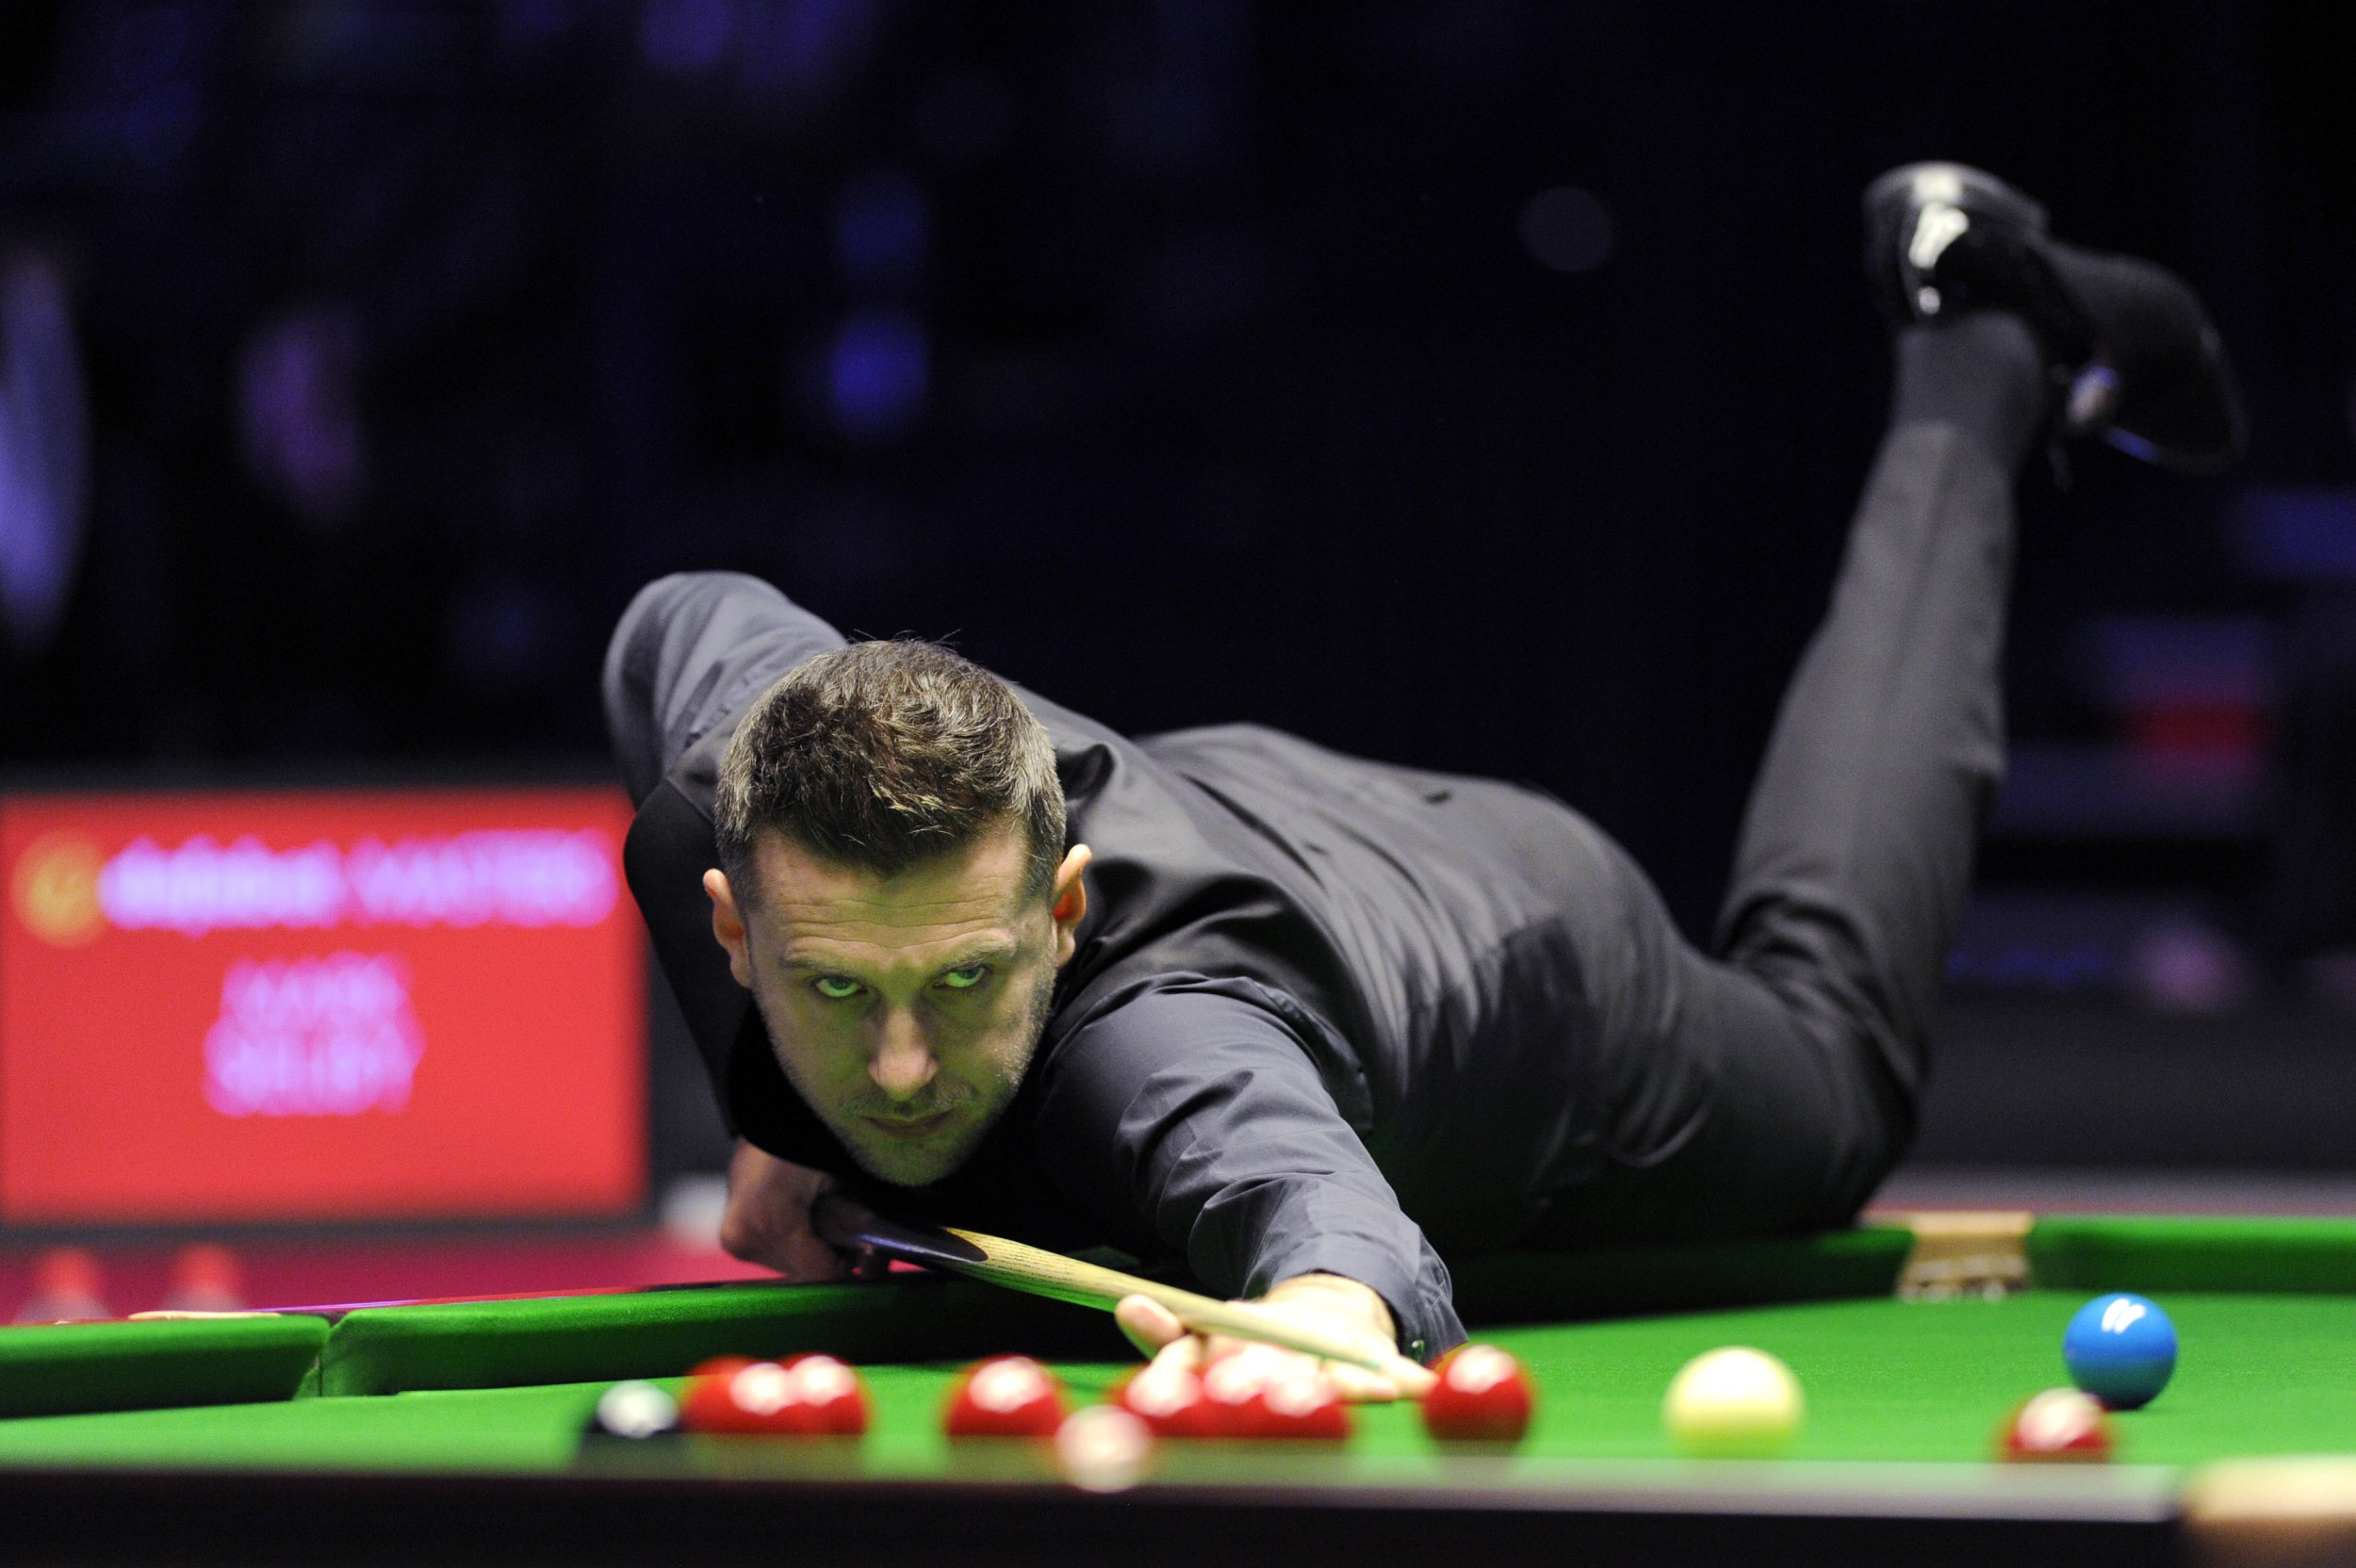 LONDON, ENGLAND - JANUARY 18: Mark Selby of England plays a shot during his quarter-final match against Judd Trump of England on day six of the 2019 Dafabet Masters at Alexandra Palace on January 18, 2019 in London, England. (Photo by Alex Burstow/Getty Images)